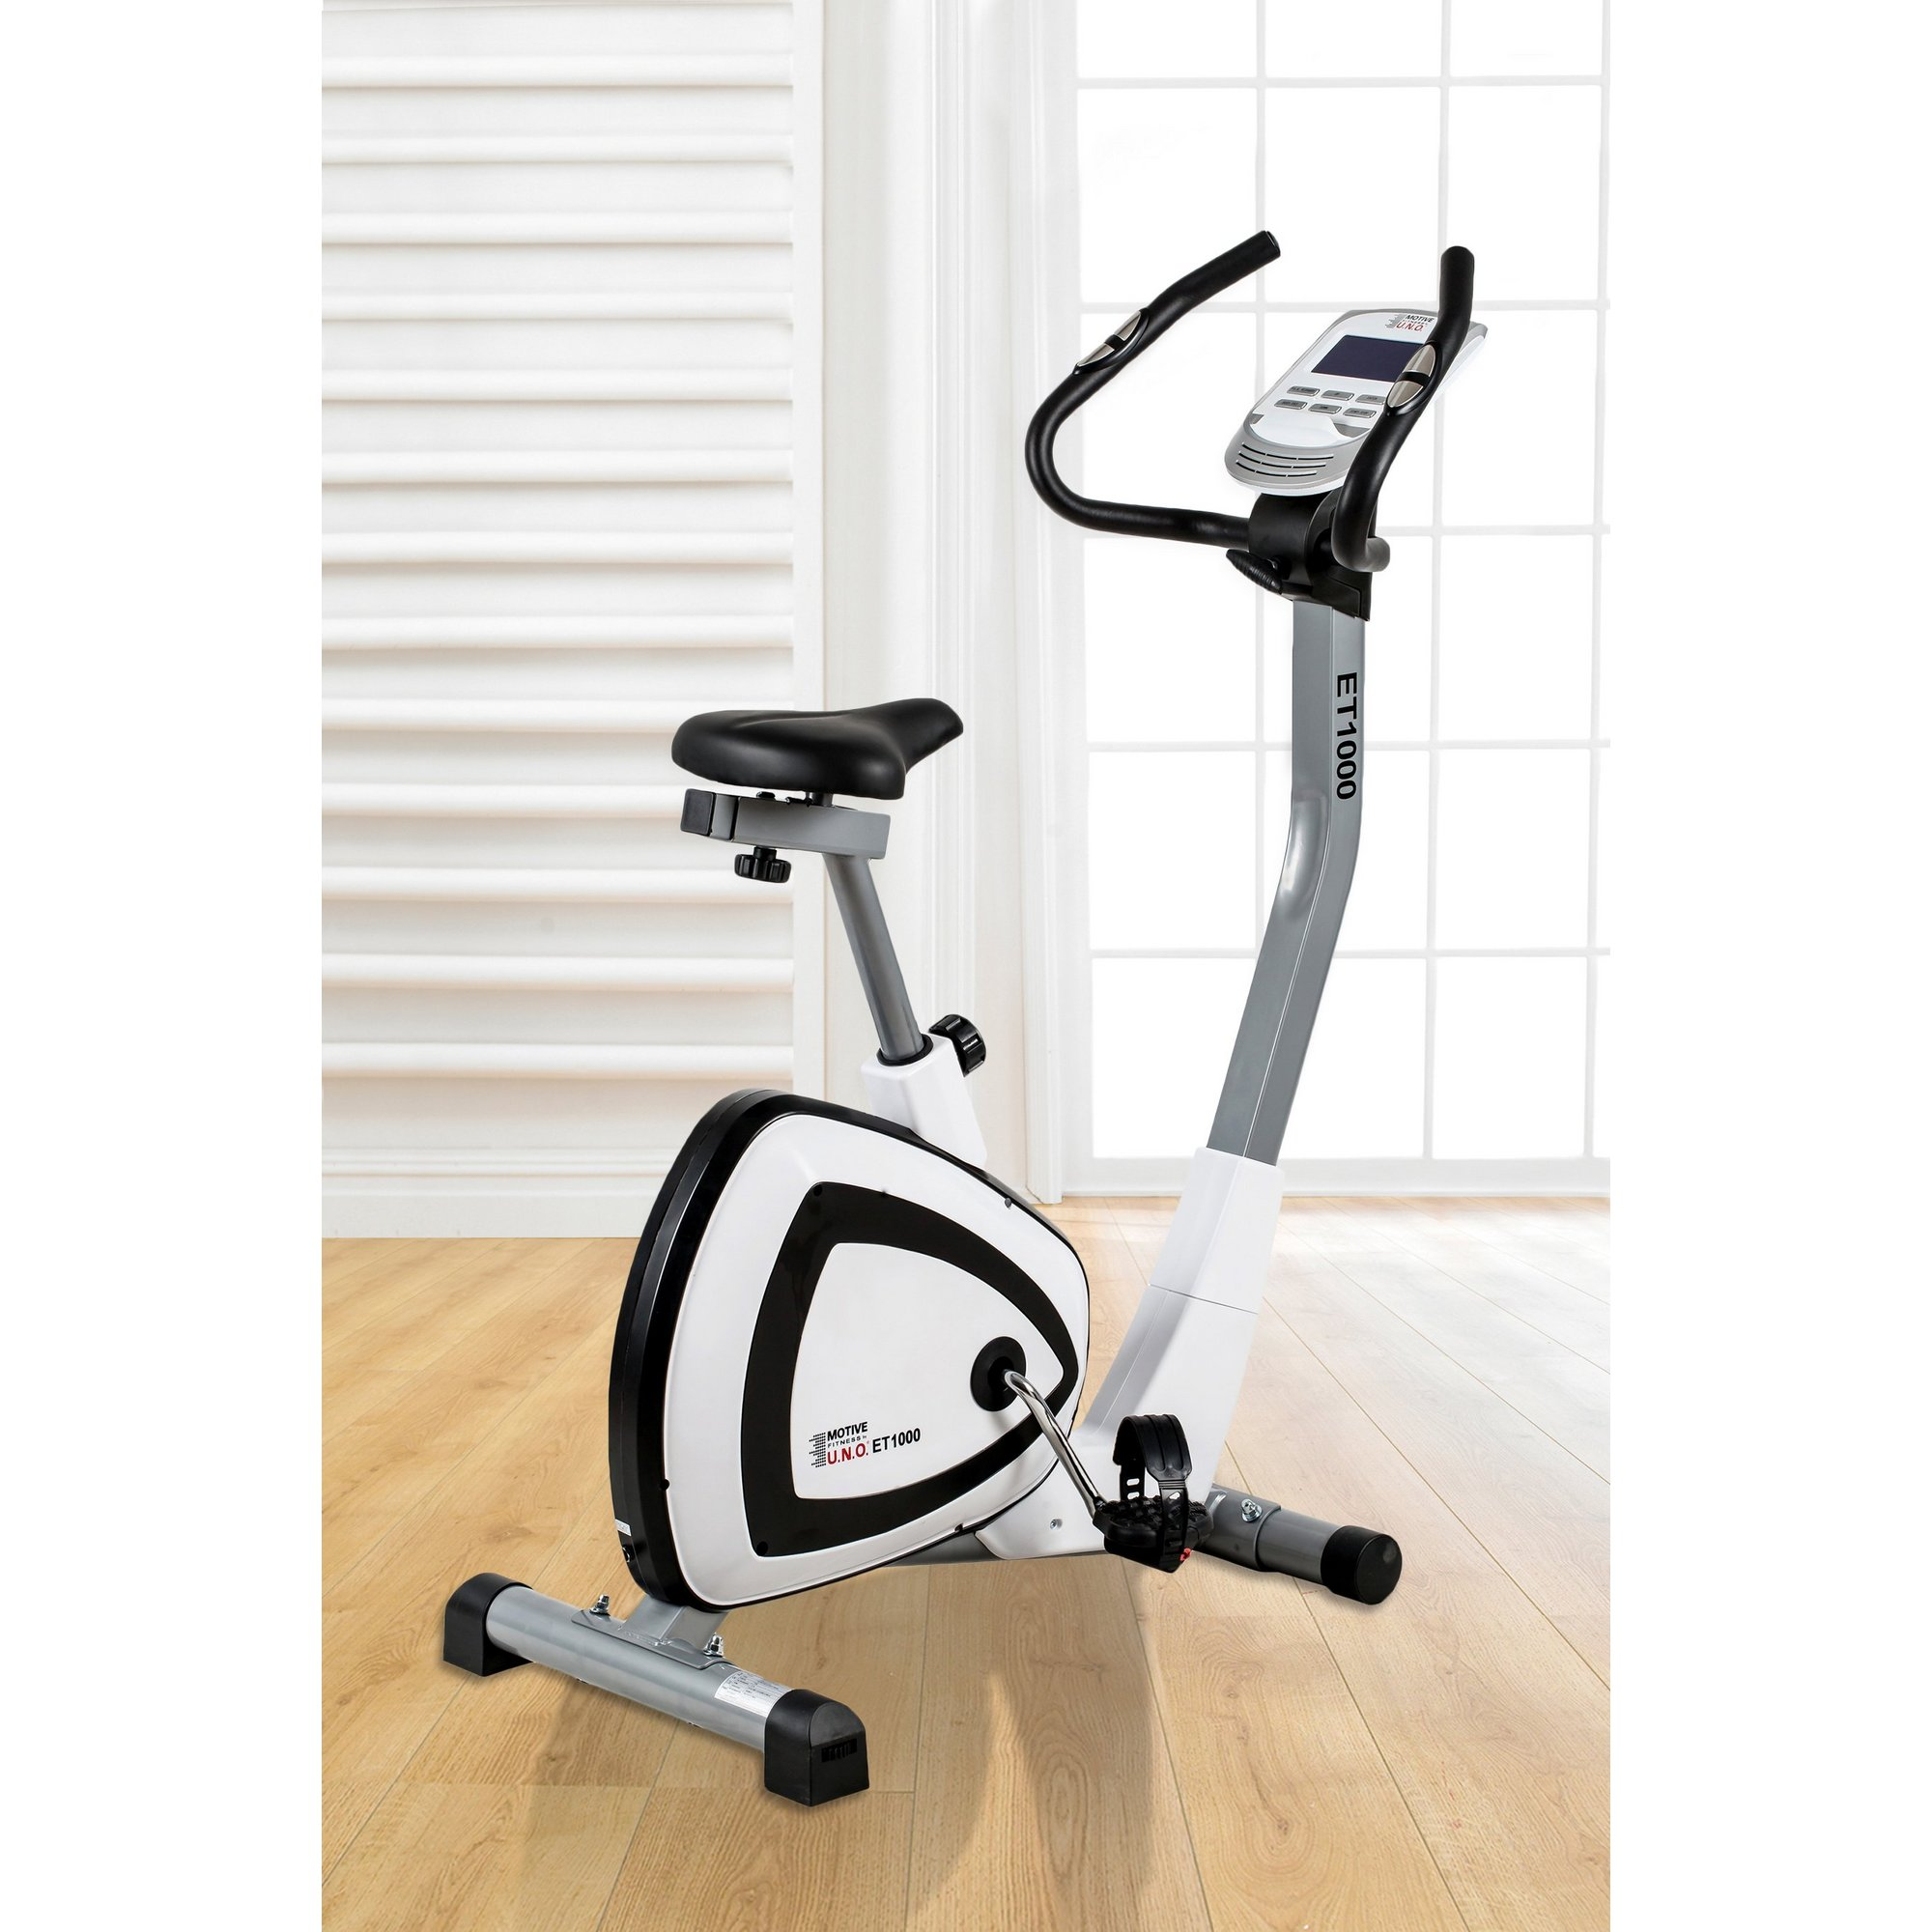 Image of Motive Fitness By Uno ET1000 Ergometer Upright Cycle